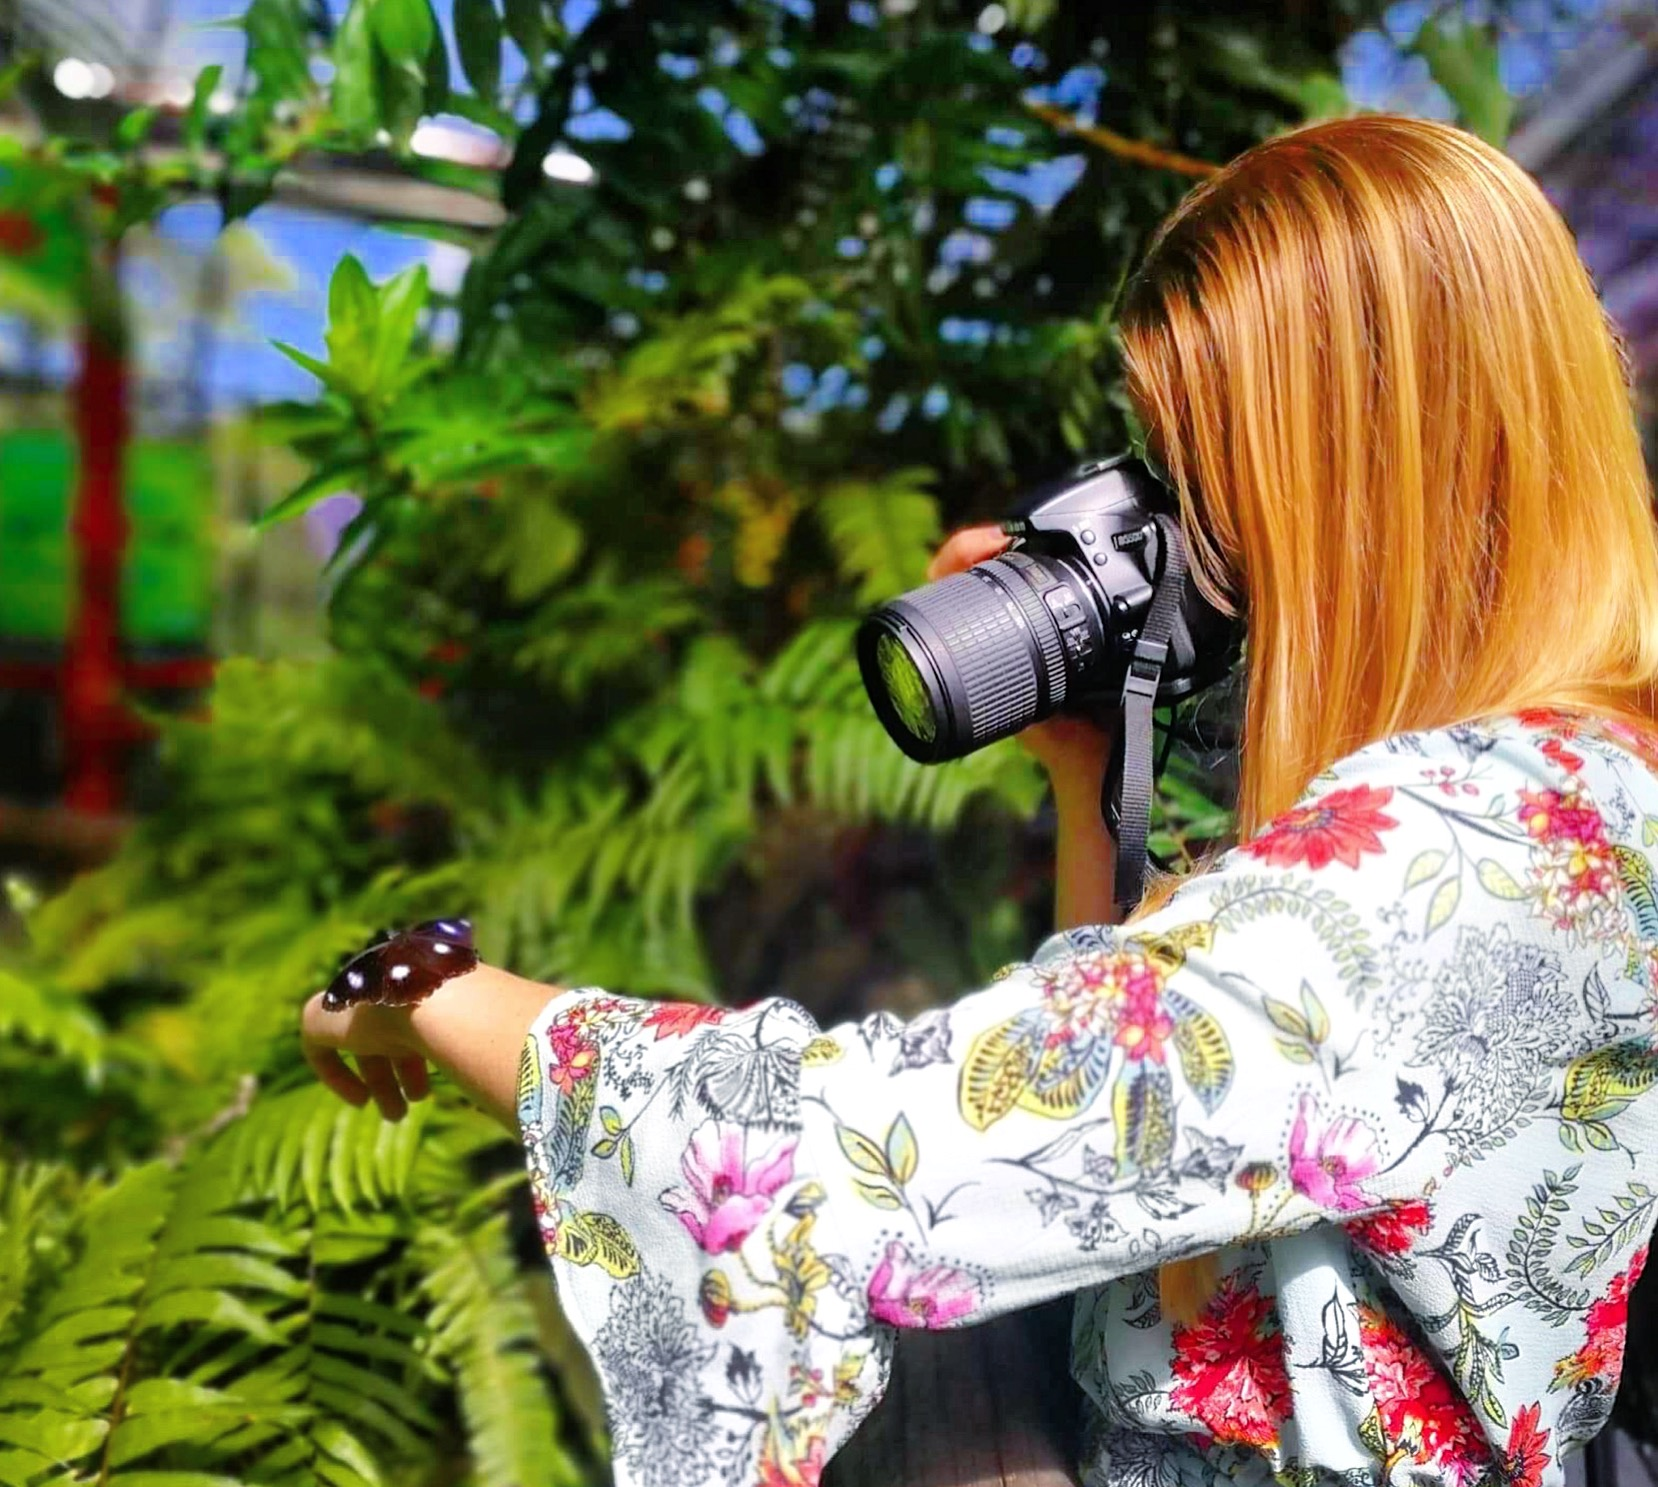 Girl taking a photo of a butterfly resting on her hand